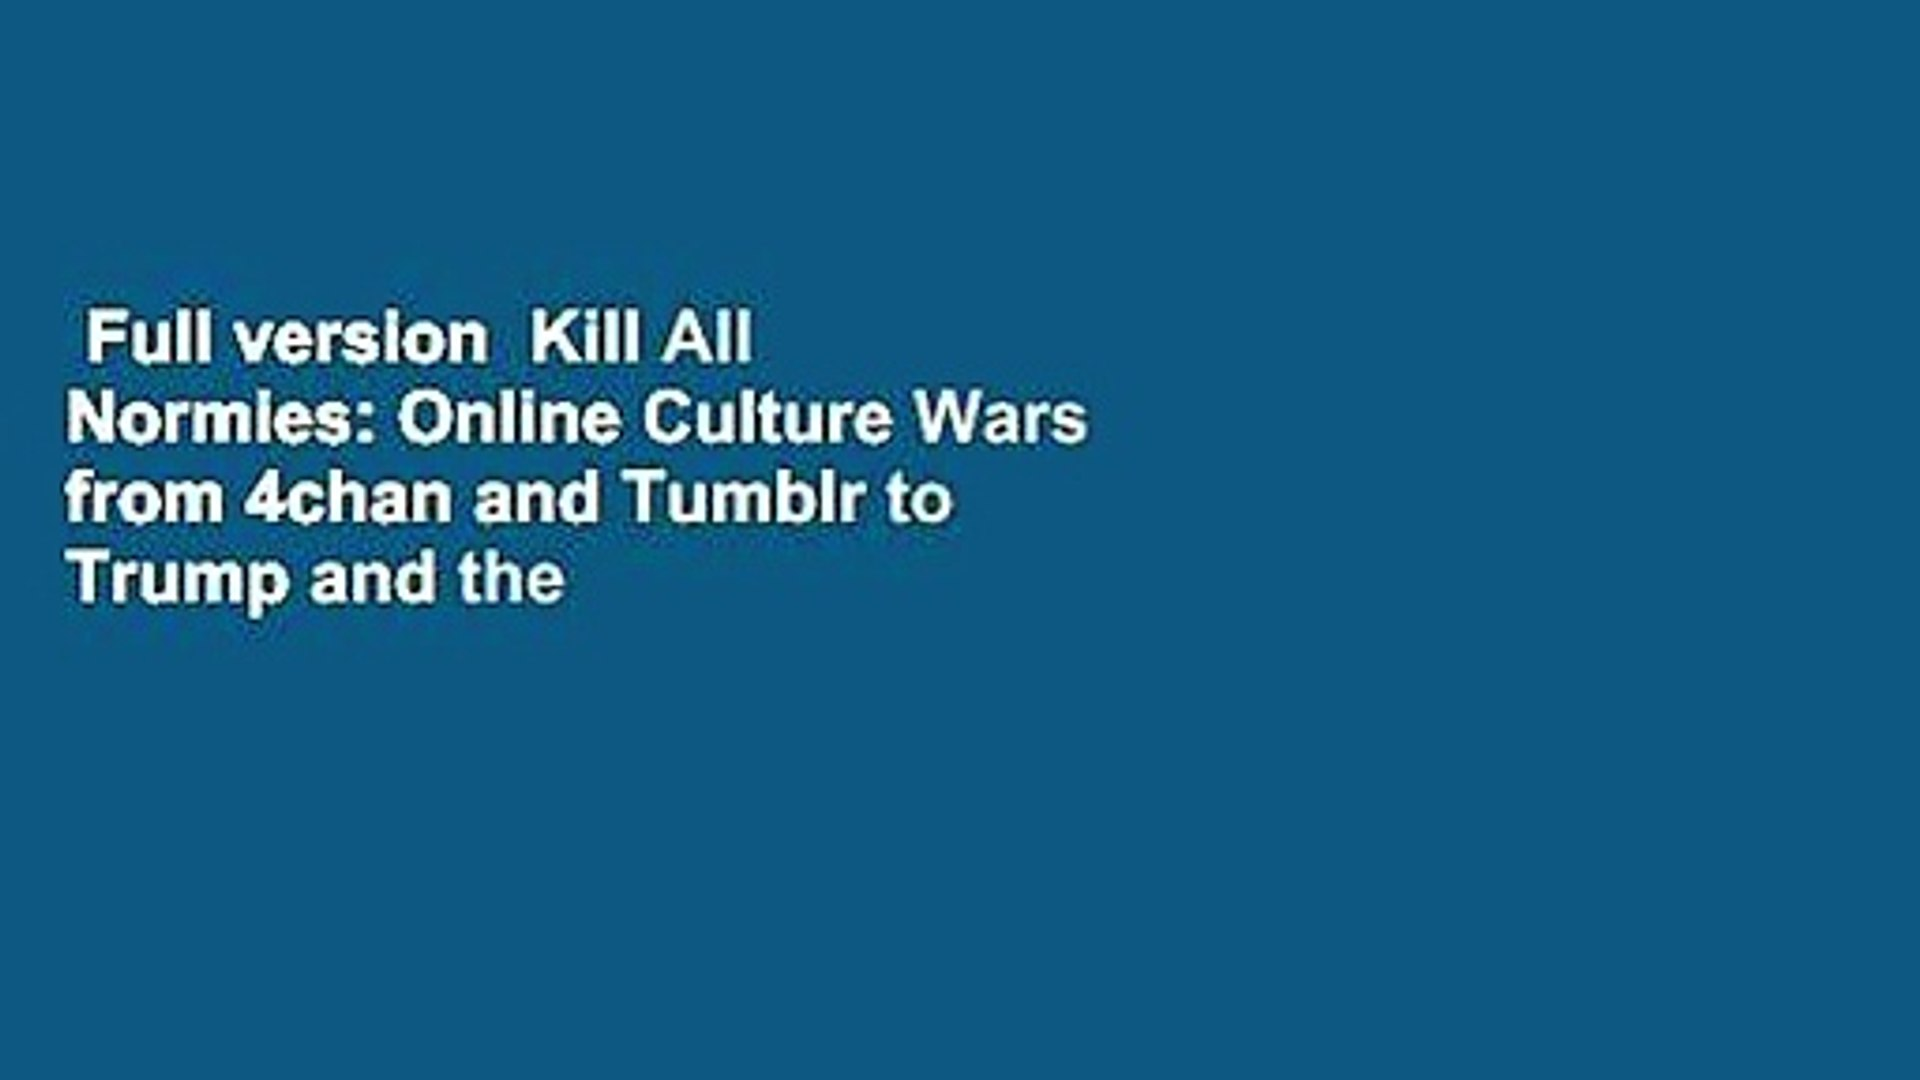 Full version  Kill All Normies: Online Culture Wars from 4chan and Tumblr to Trump and the